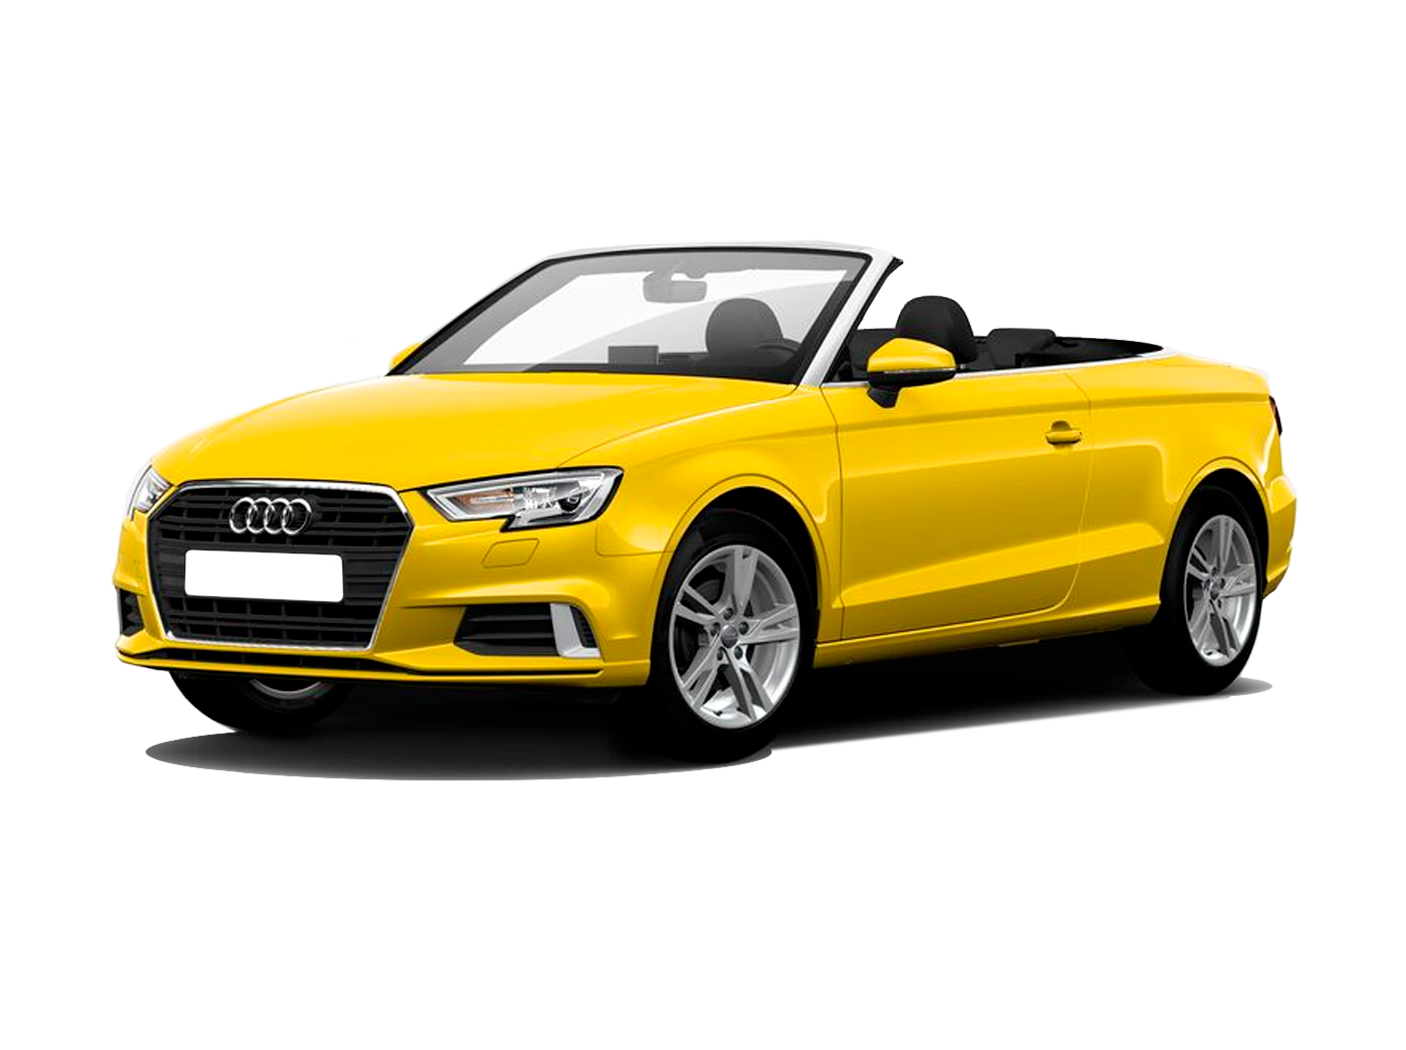 AUDI - A3 - 2.0 TFSI GASOLINA CABRIOLET PERFORMANCE S-TRONIC